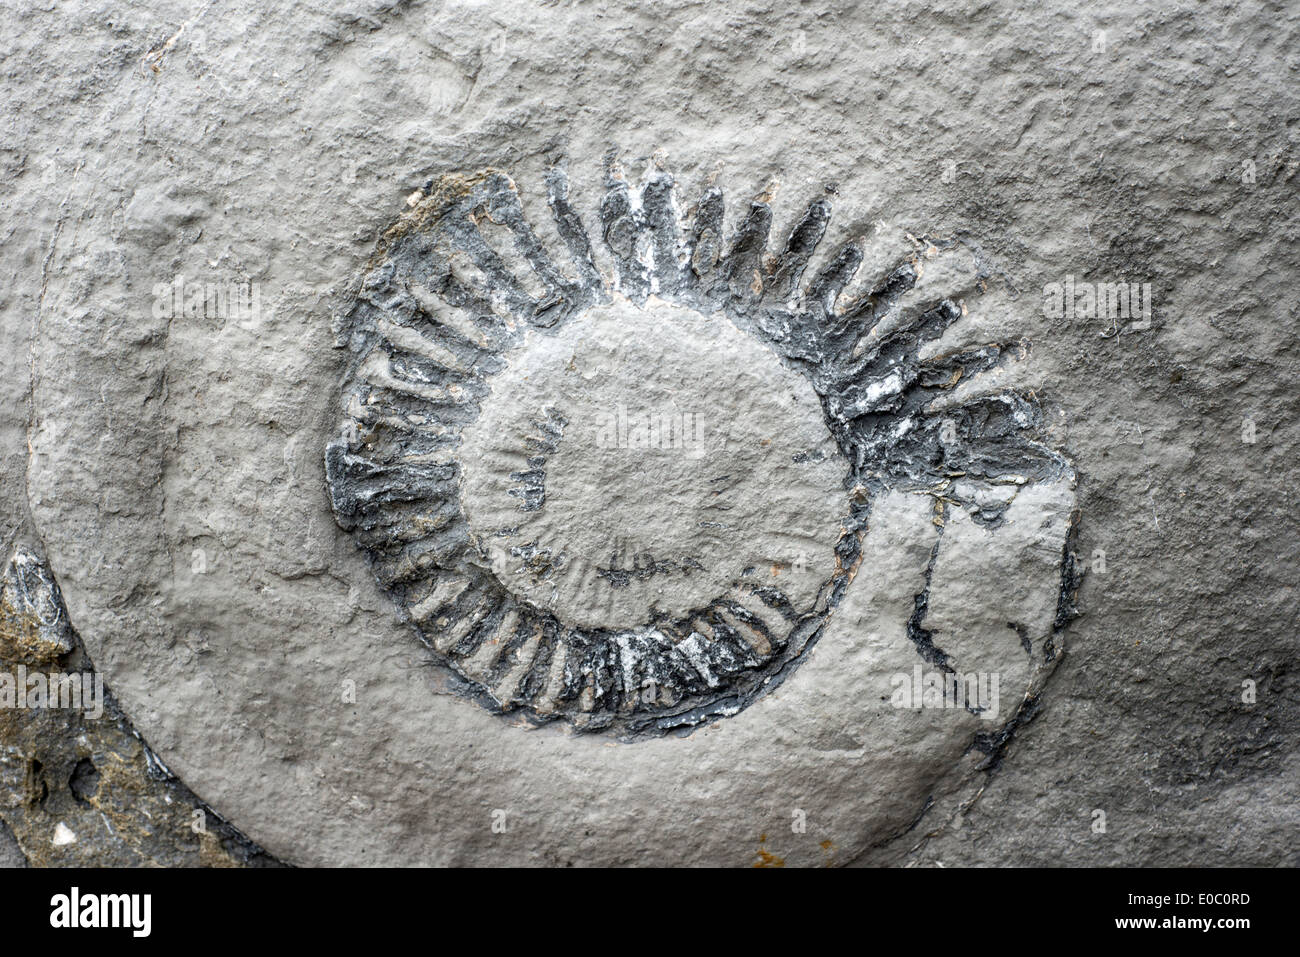 Ammonite fossil in a rock on the beach at Lyme Regis, Dorset, England, UK - Stock Image